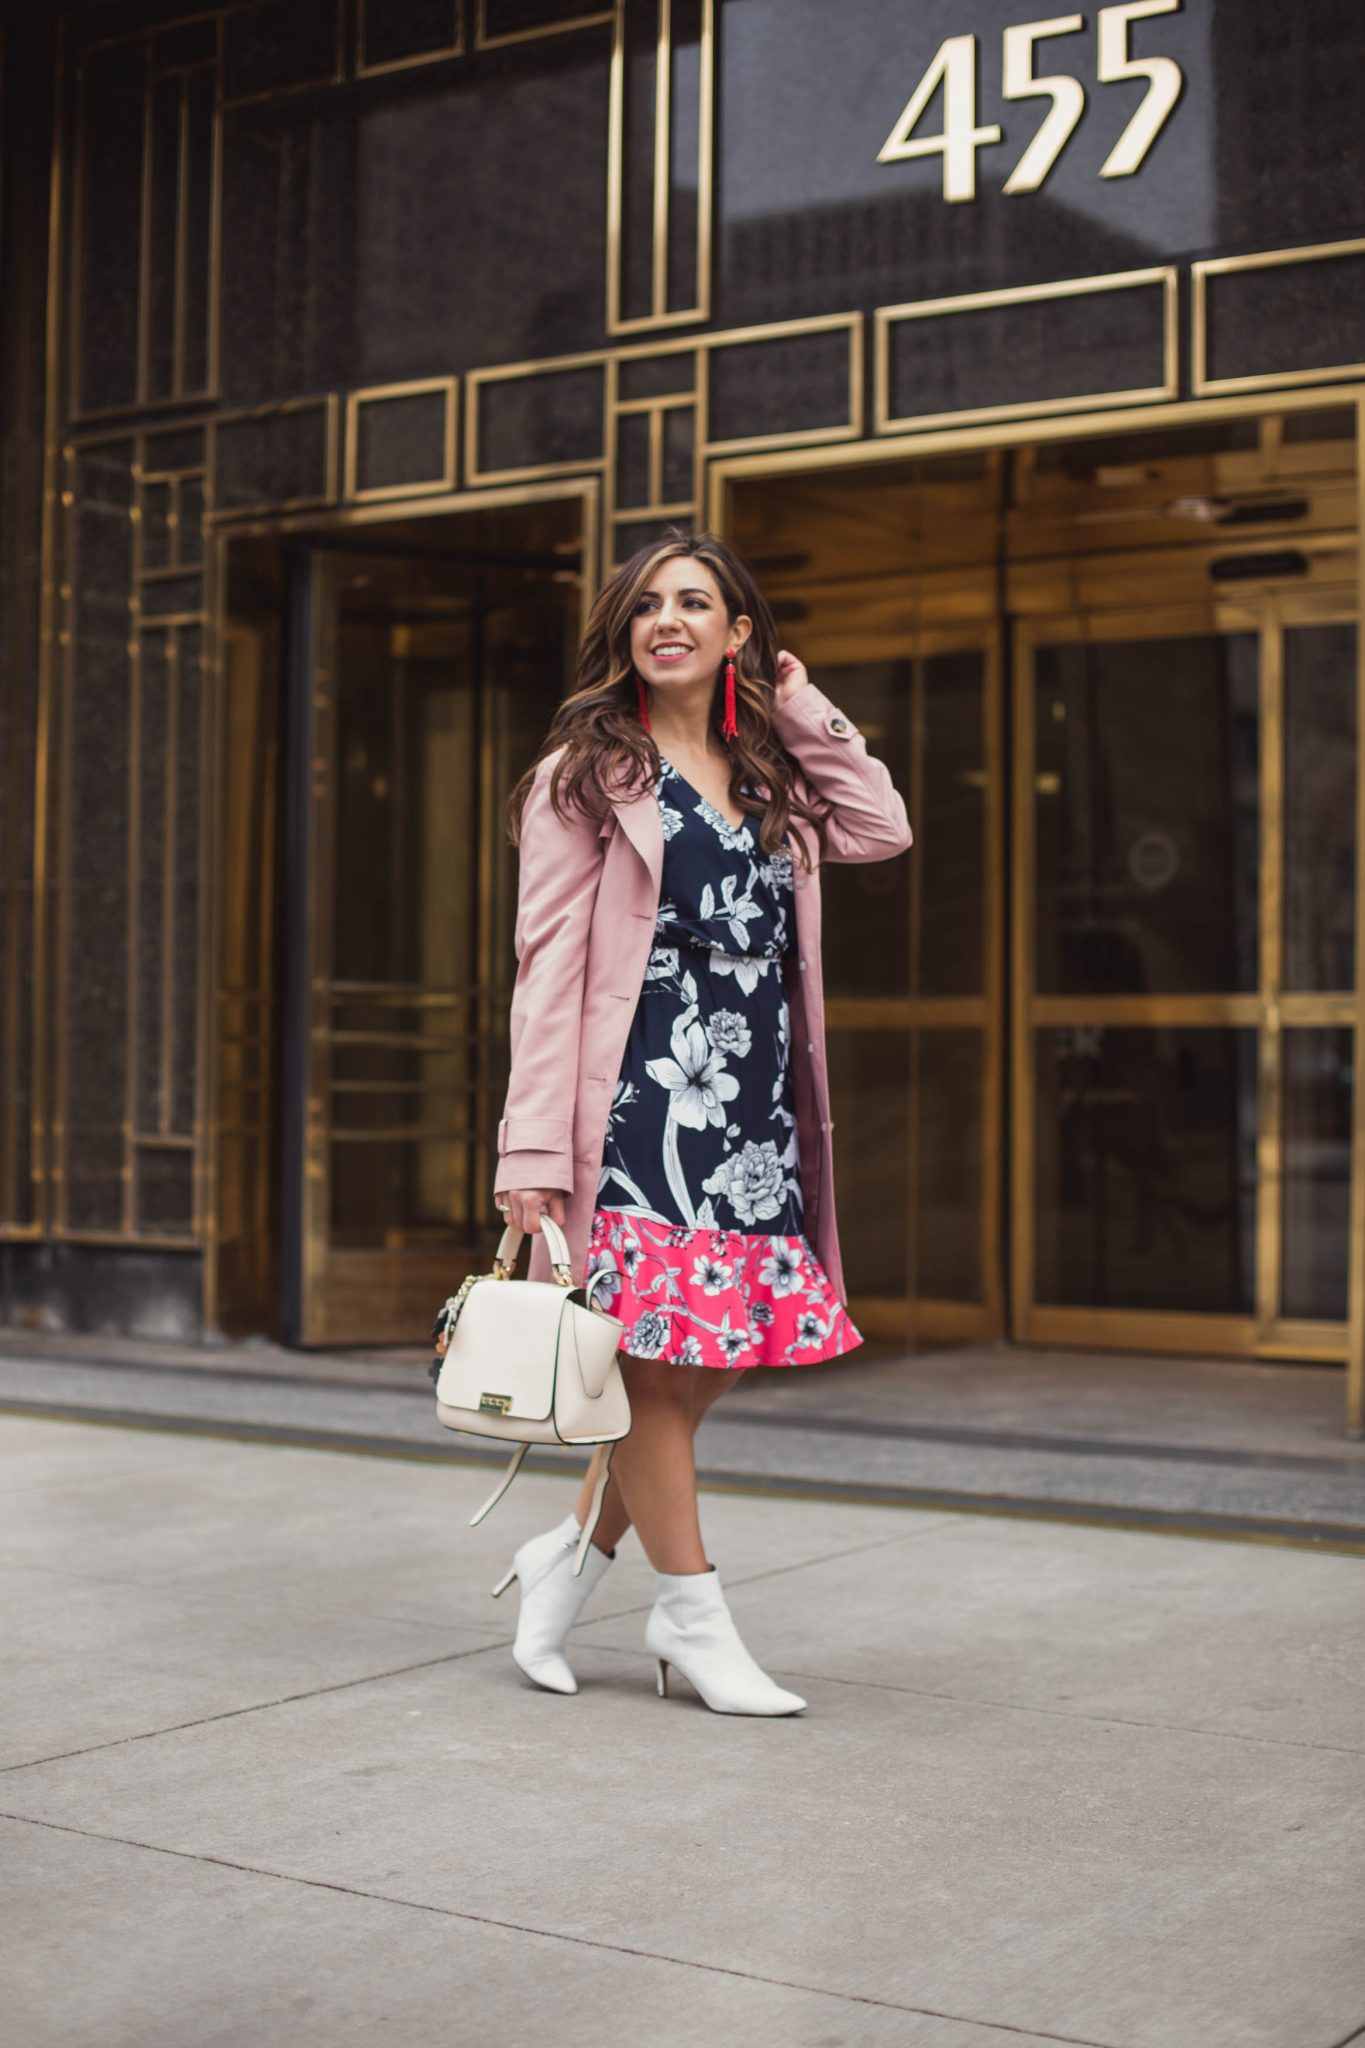 Lifestyle blogger Roxanne of Glass of Glam wearing an Eliza J dress, white booties, Zac Posen bag, and a pink trench coat - Spring Trench Coats styled by popular Chicago fashion blogger Glass of Glam